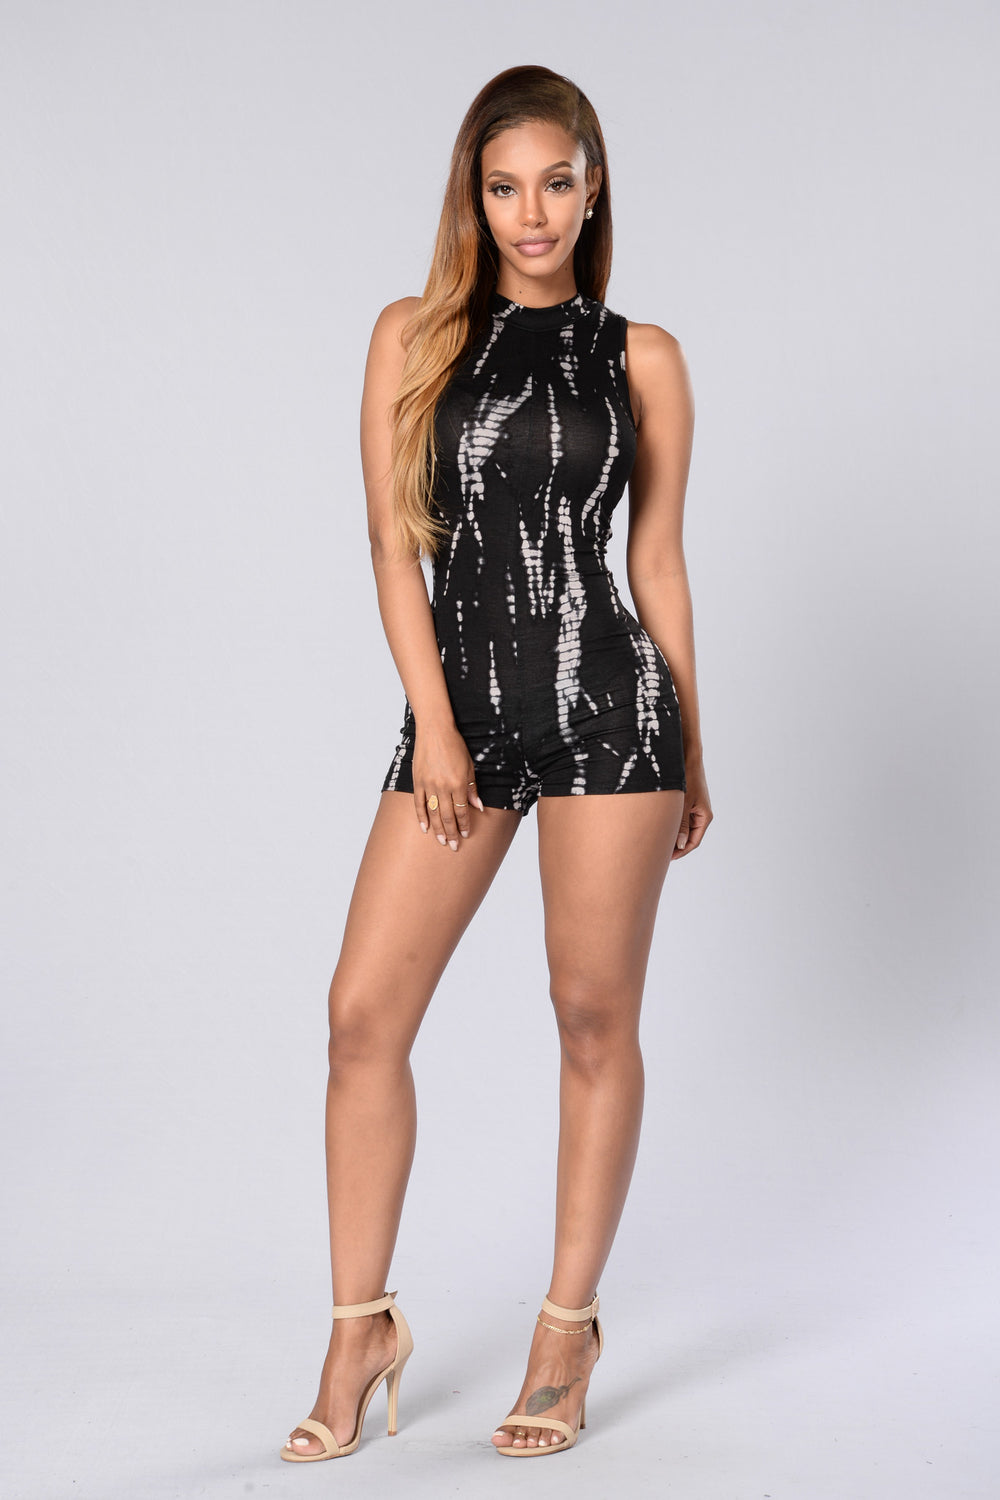 You Can't Tie Me Down Romper - Black